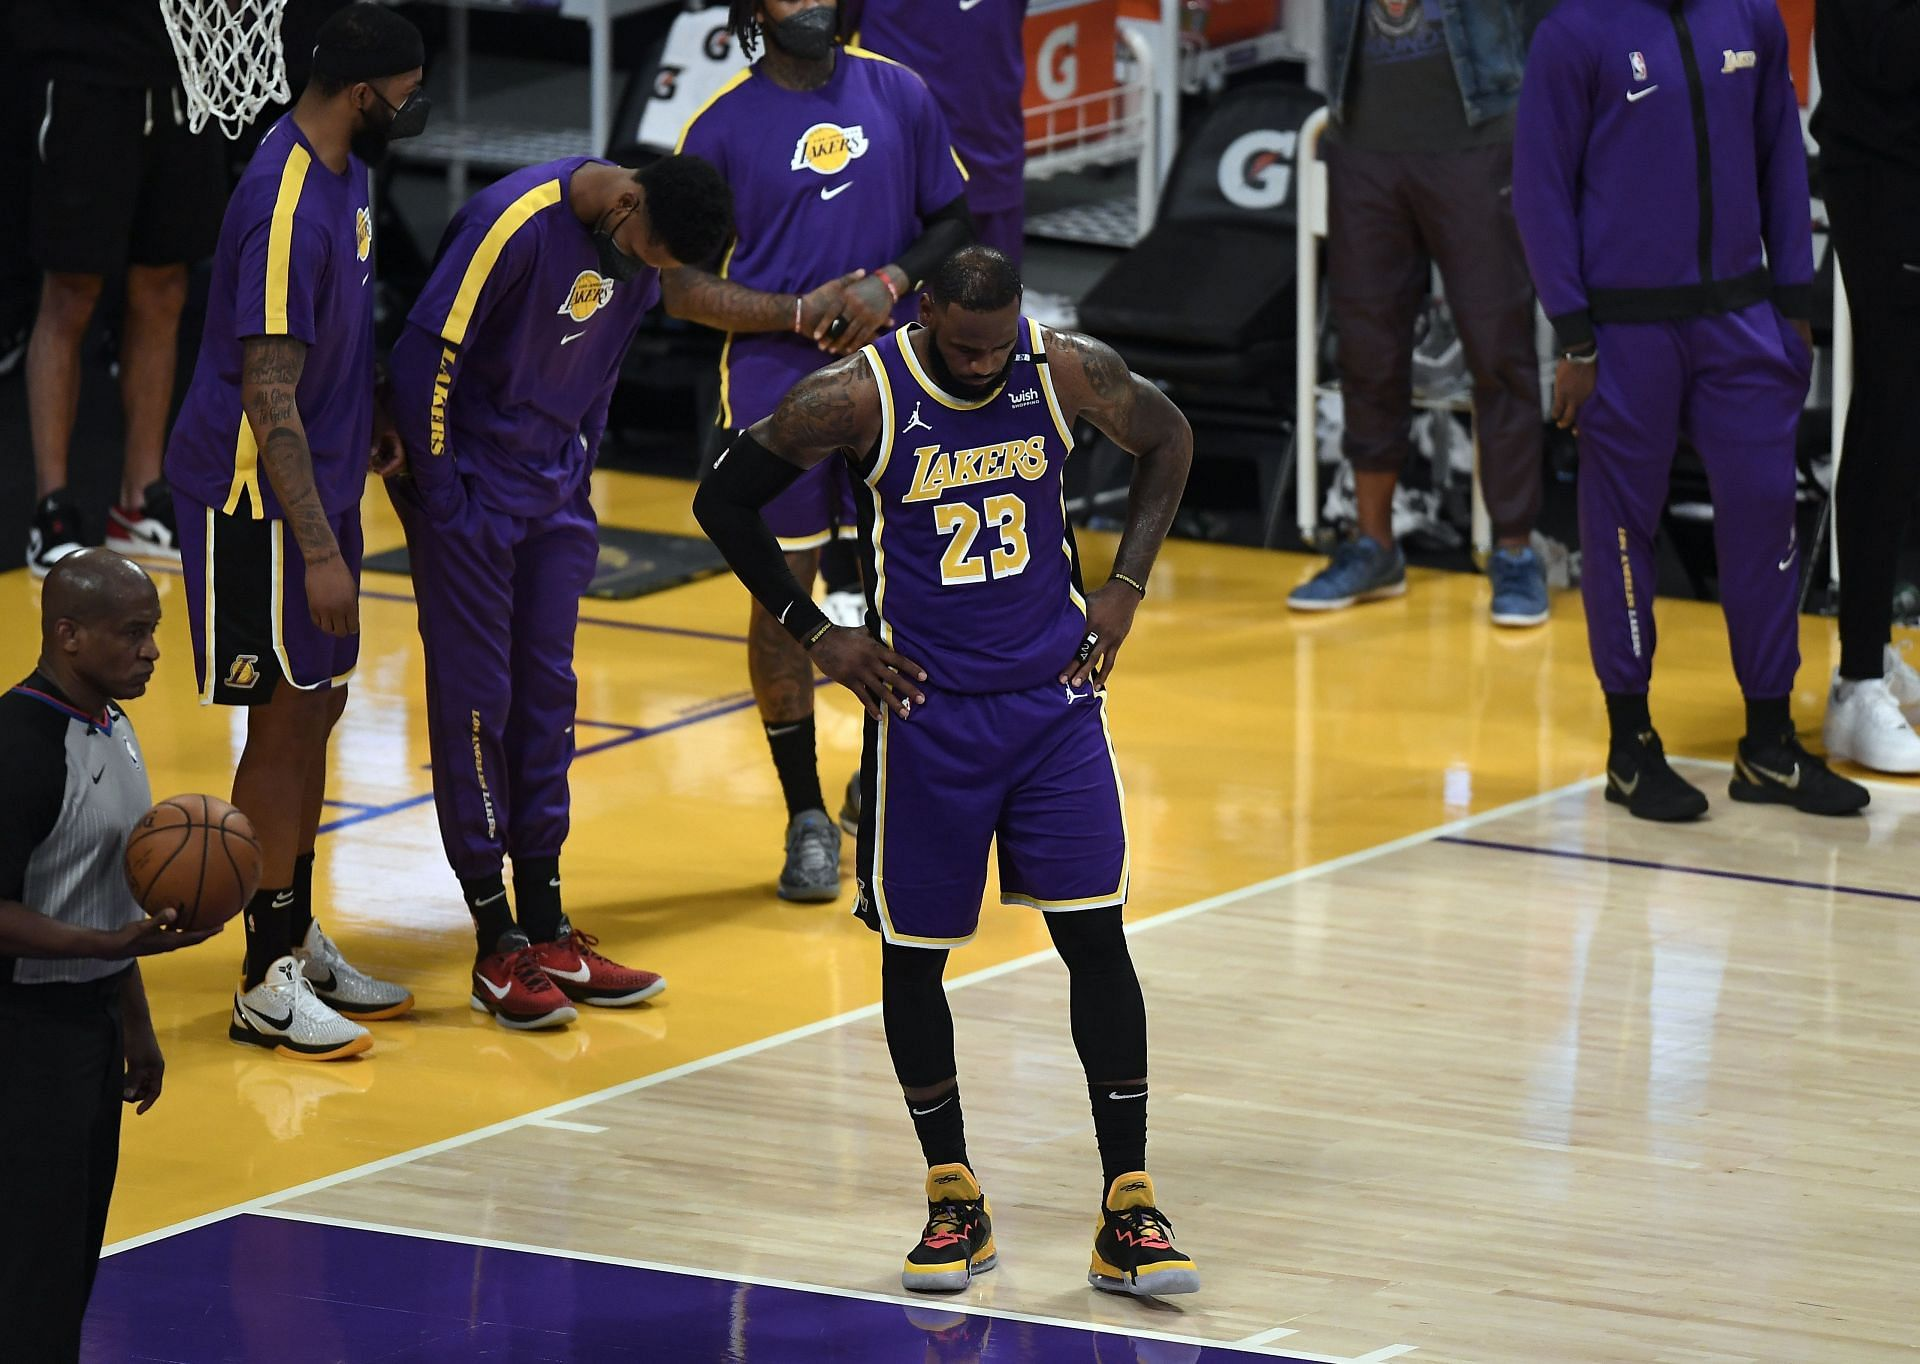 Sacramento Kings and Los Angeles Lakers will face each other in a preseason game on Thursday.